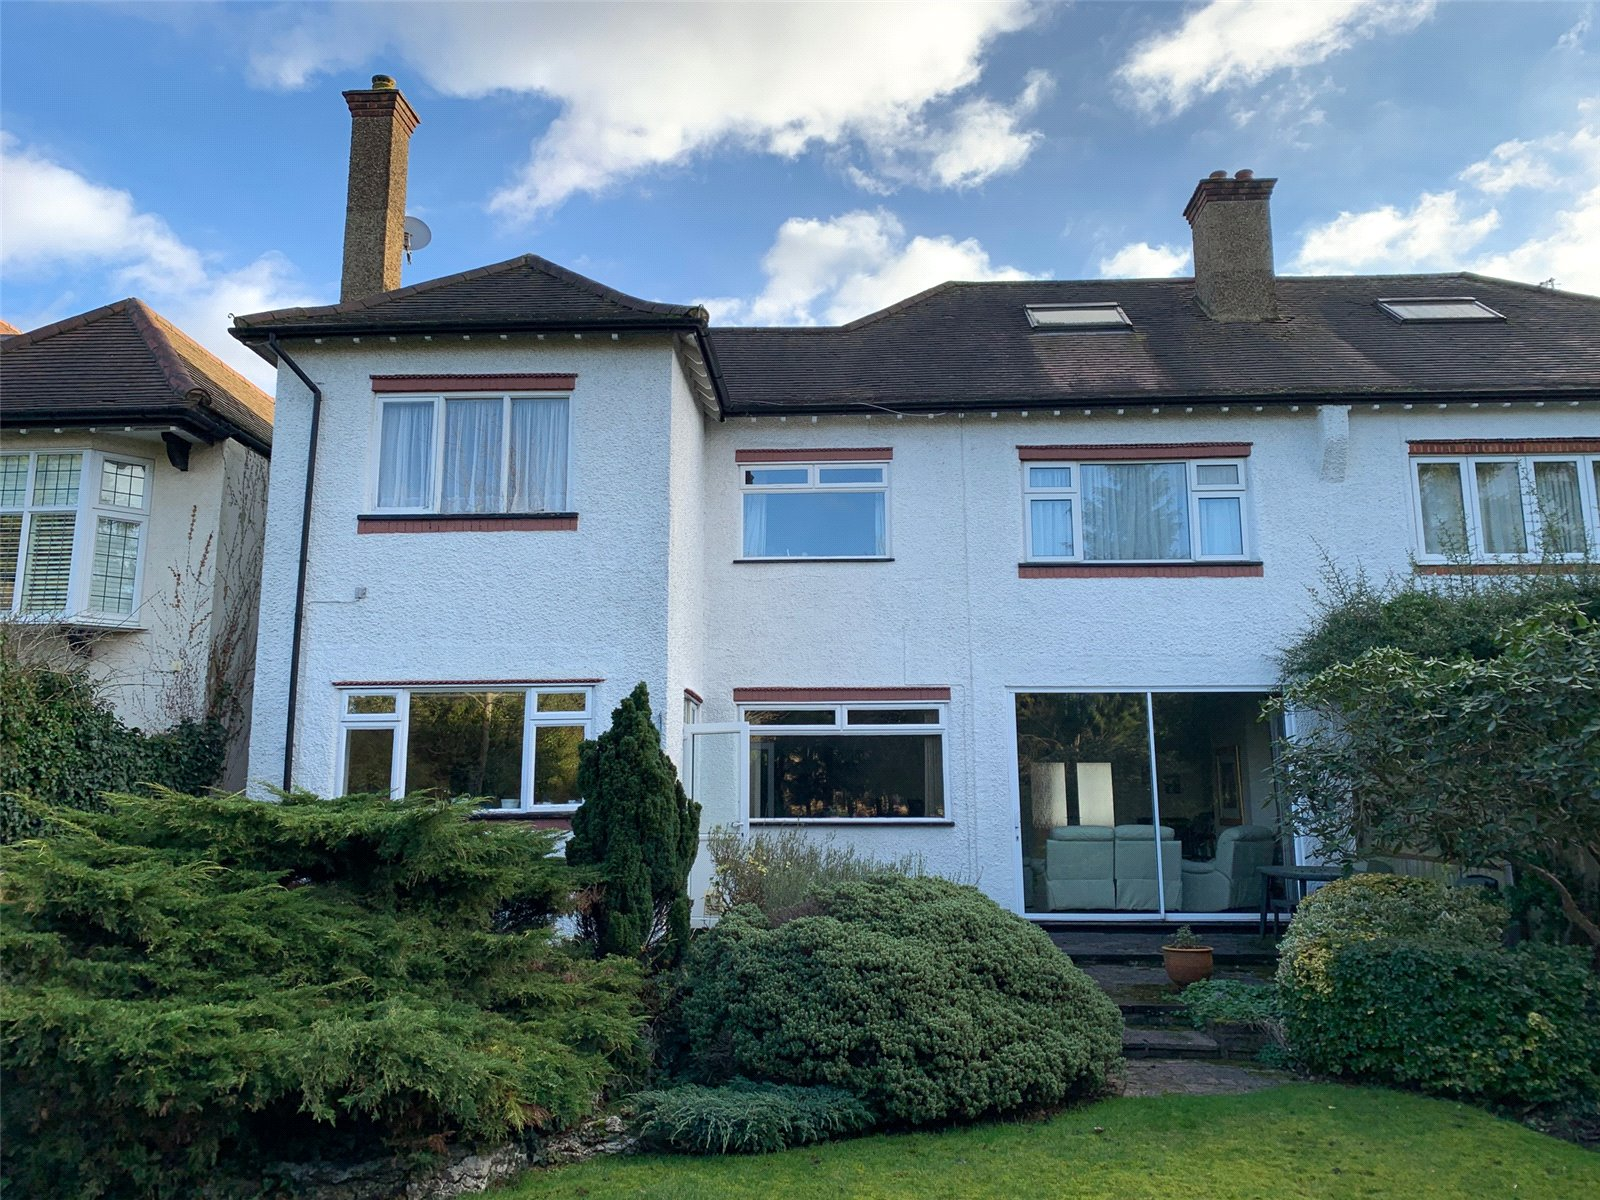 4 bed house for sale in Whetstone, N20 9ED  - Property Image 8